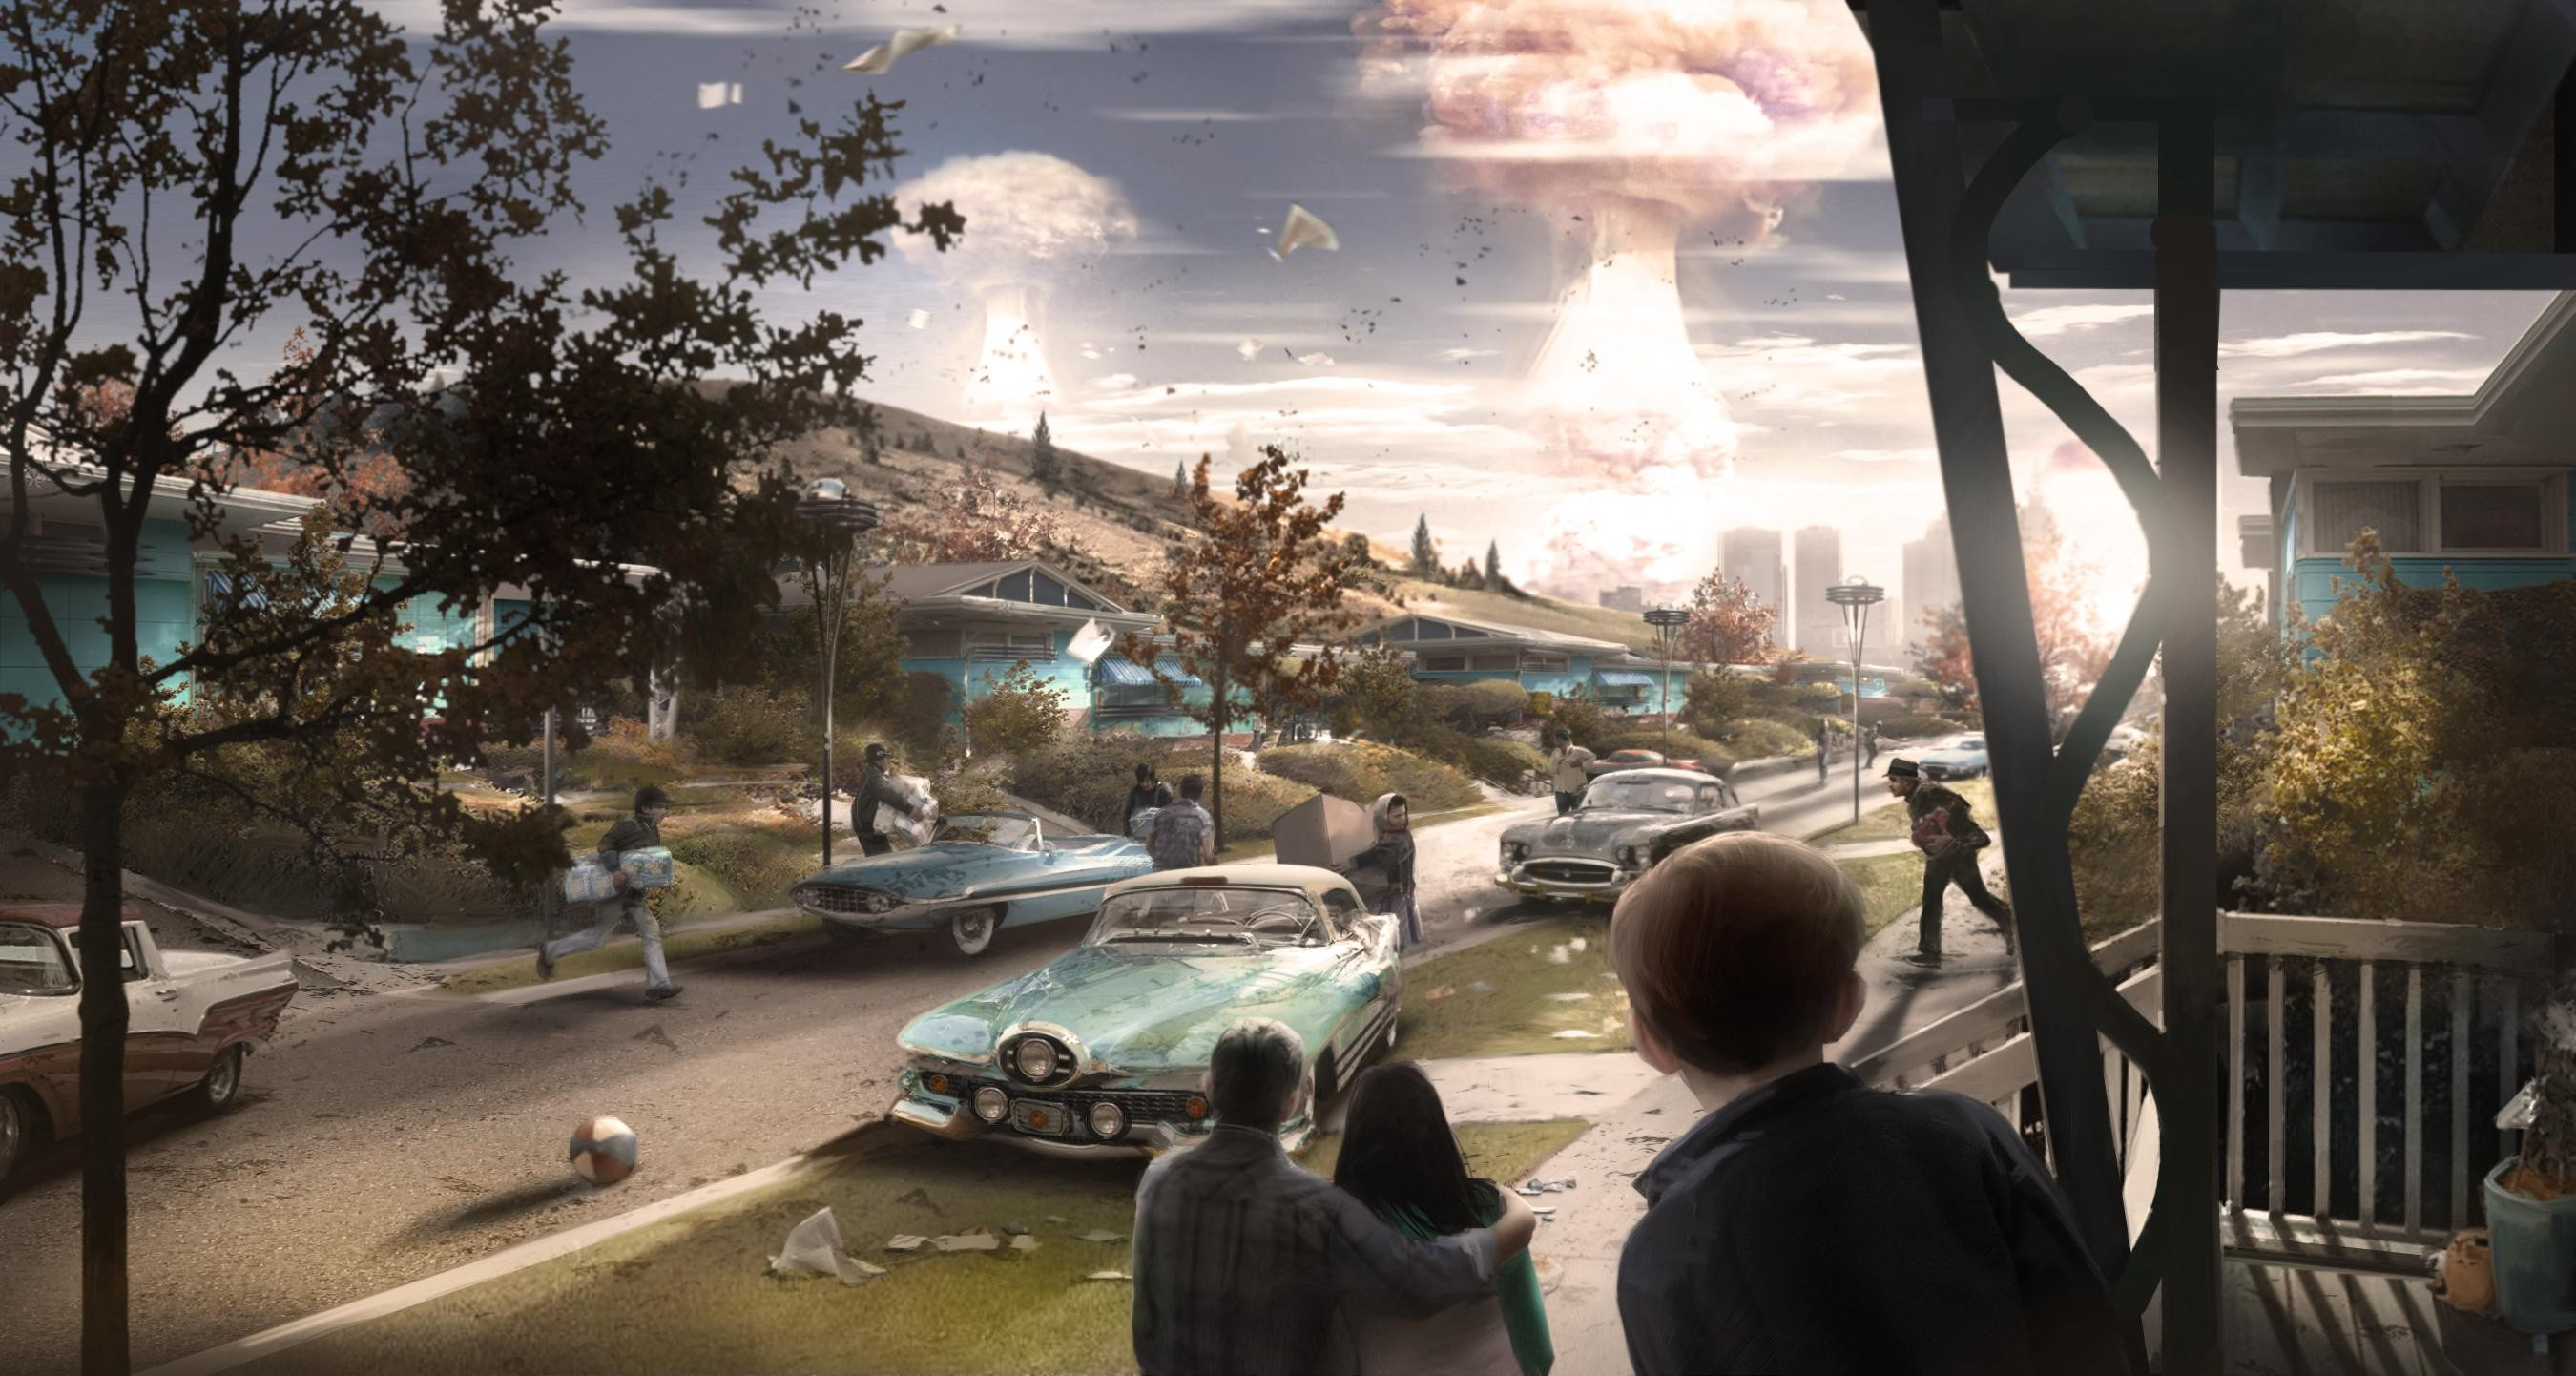 ZeniMax Media's 'Fallout 4' game set the record as the most viewed game launch of all 2015 games.